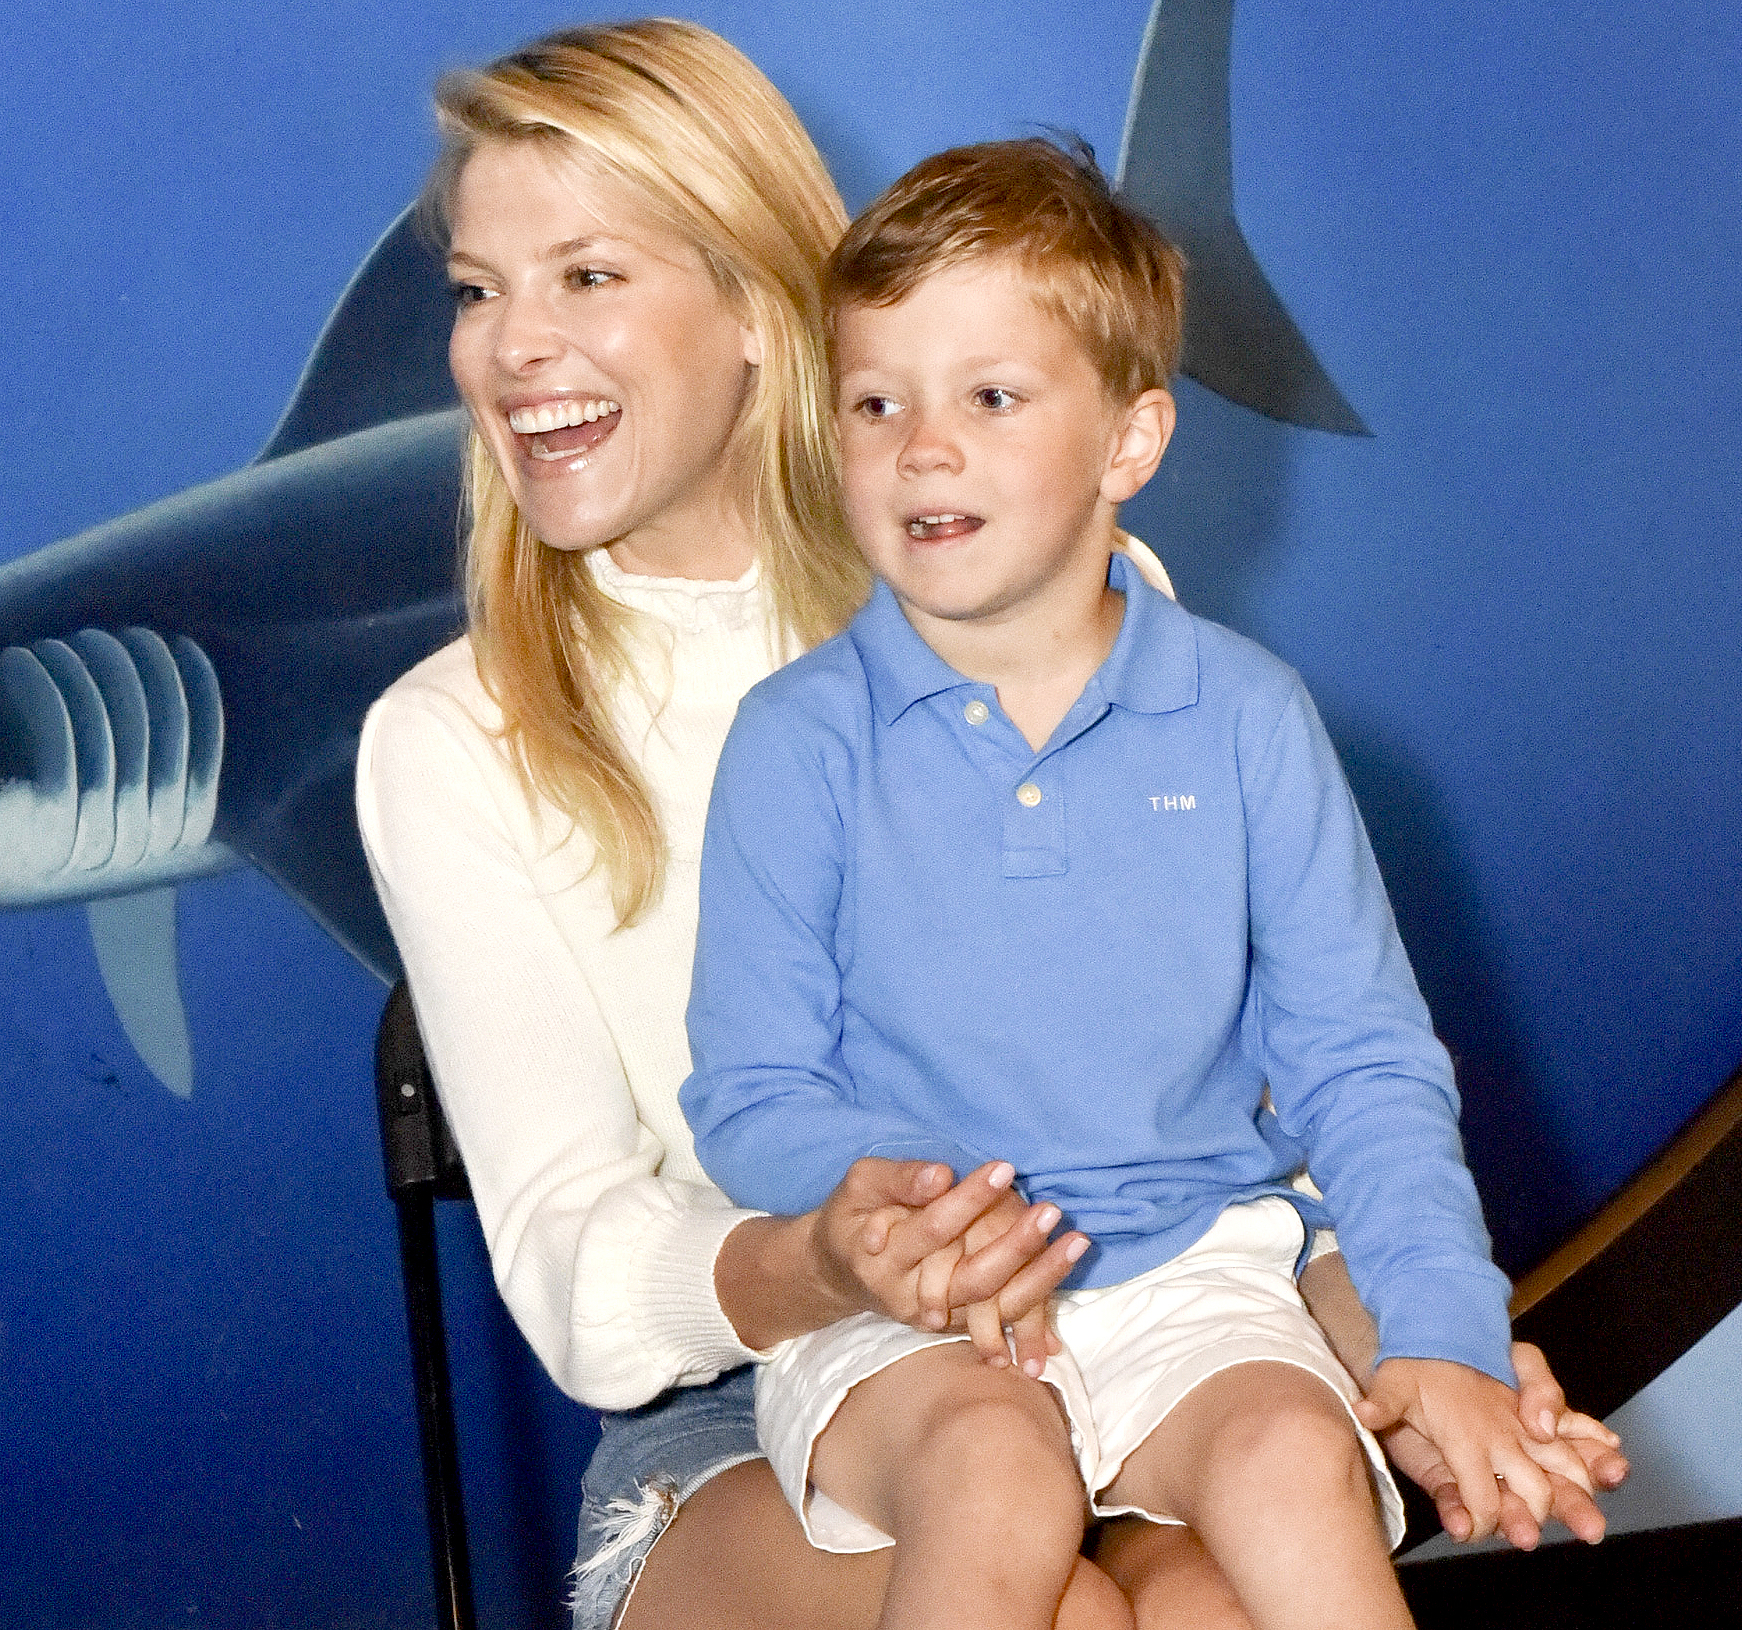 Ali Larter and son Teddy at Heal the Bay's Santa Monica Pier Aquarium for a story reading on June 4, 2016 in Santa Monica.